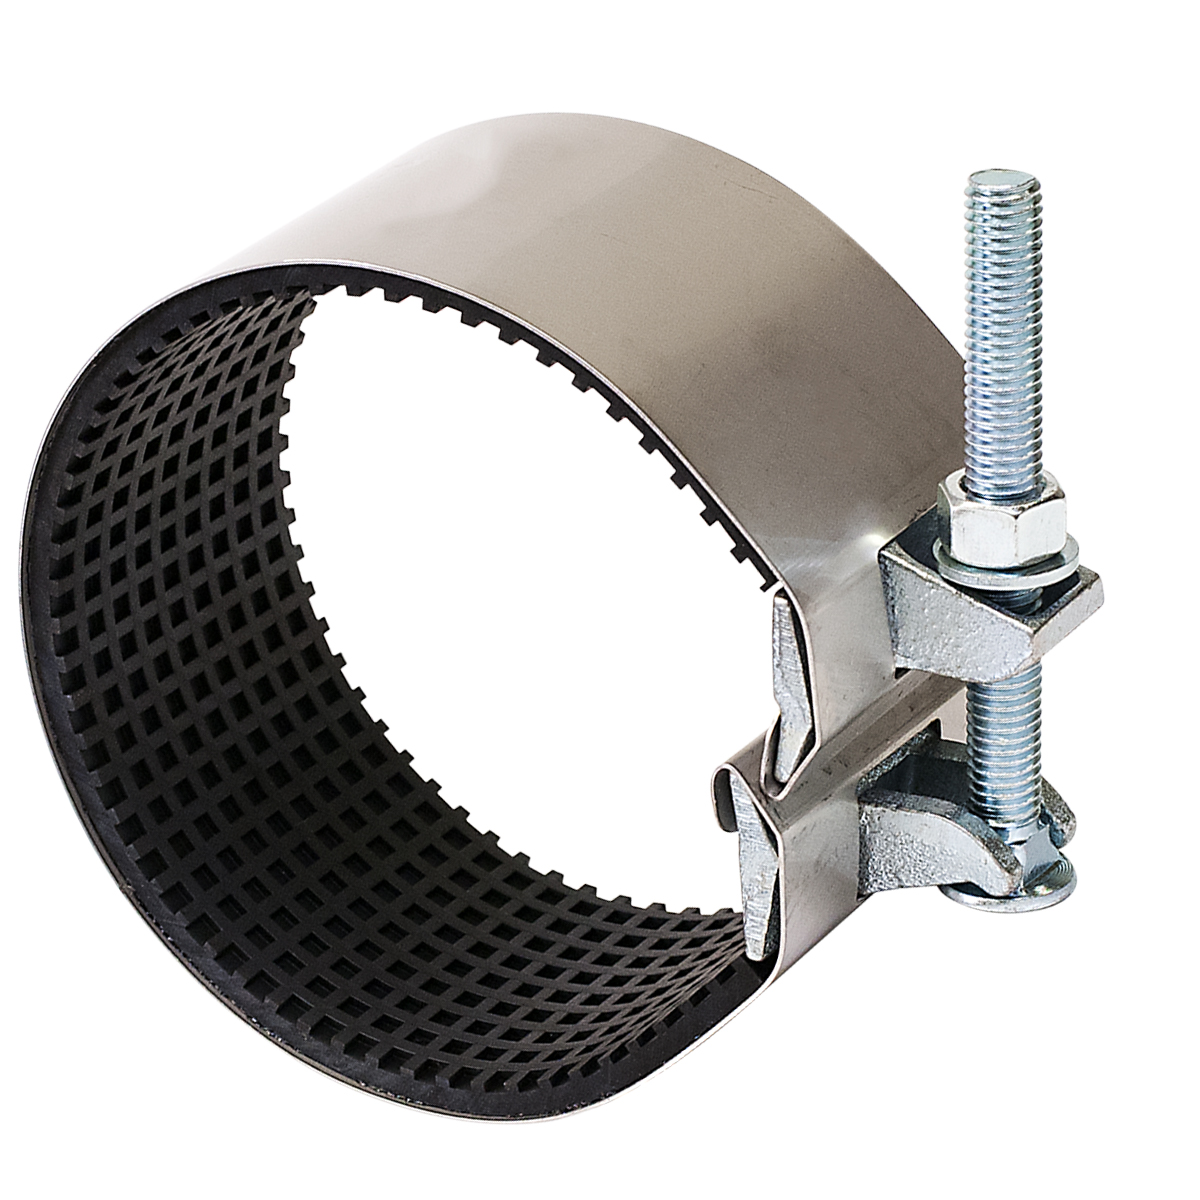 SC - Stainless steel repair clamp.Nominal Sizes1/2 - 8 inchesWorking PressureUp to 150 psiPipe CompatibilitySteel, cast iron, asbestos cement, plastic and other types of pipe